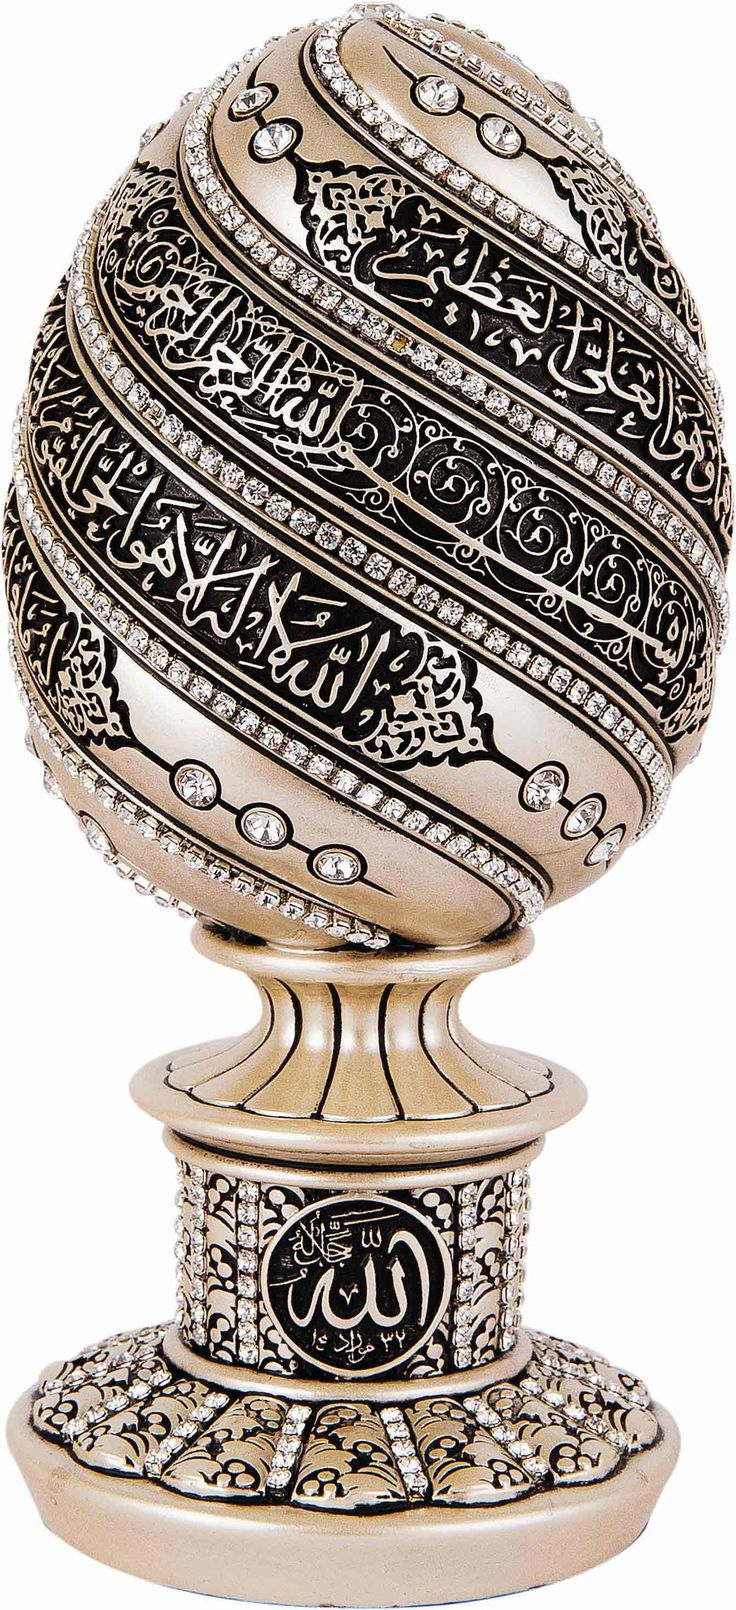 Ayatul Kursi Statue Jeweled Small ISLAMIC ART♦️More Pins Like This At FOSTERGINGER @ Pinterest ♦️